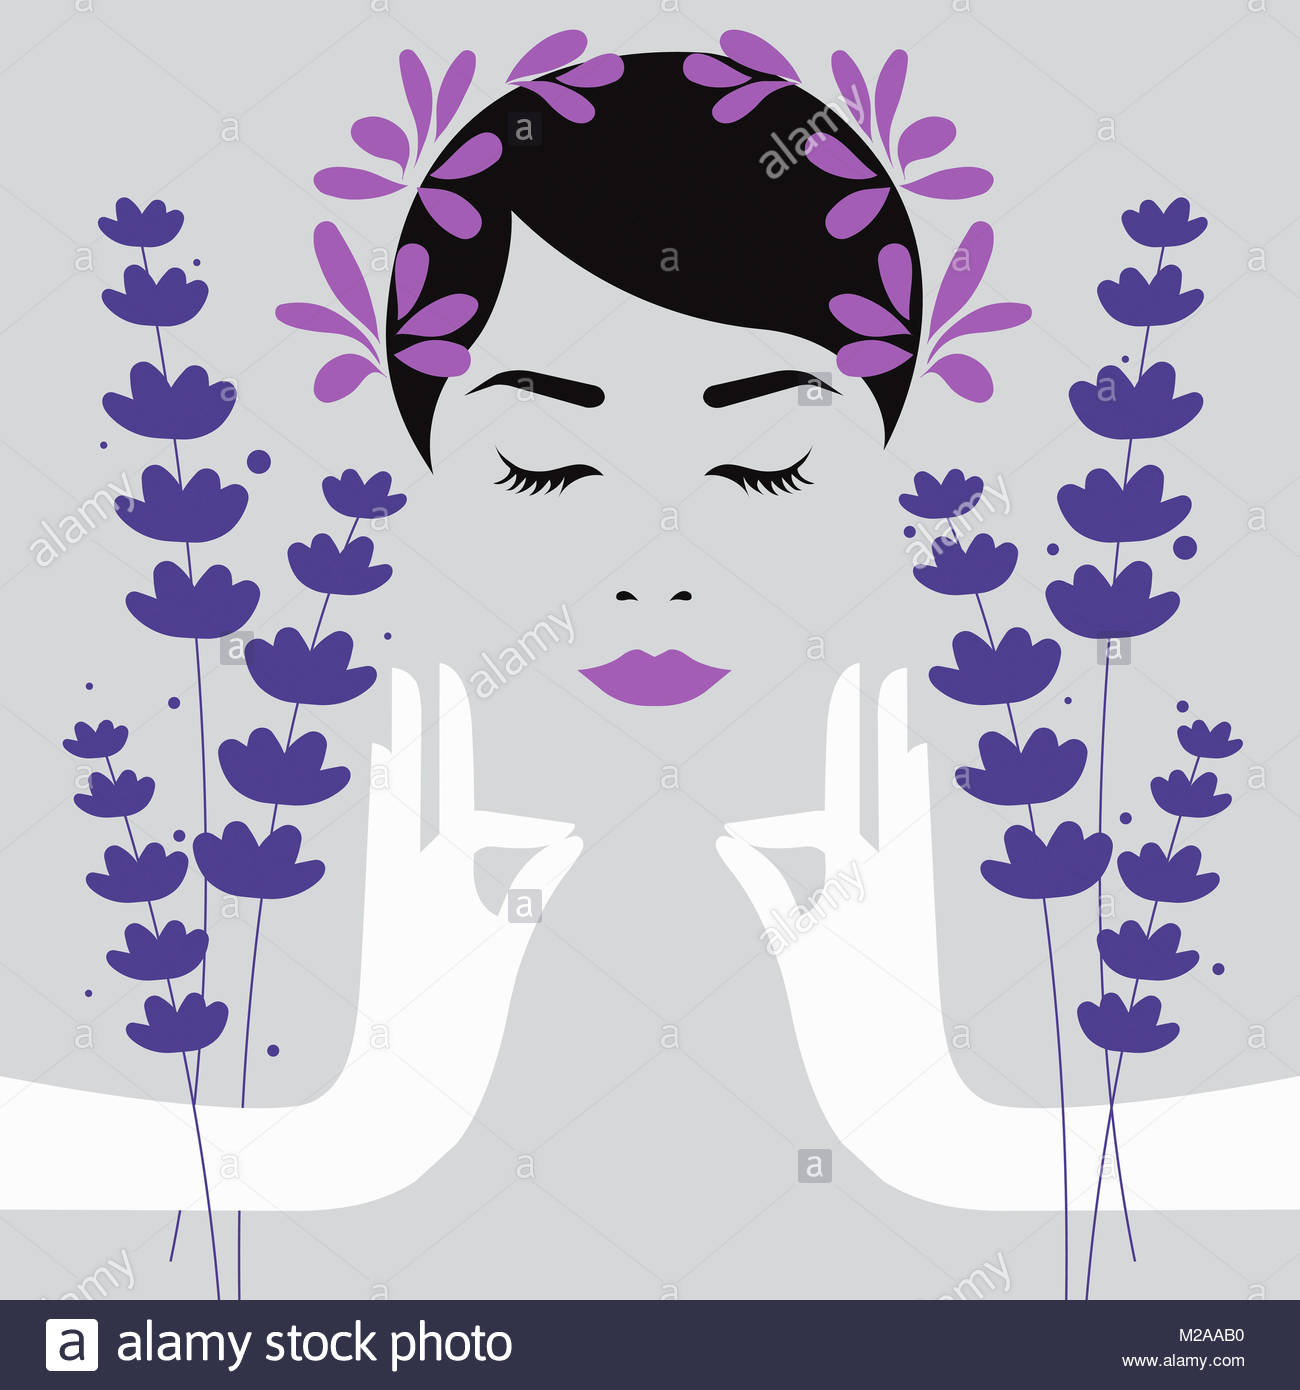 Woman meditating with lavender aromatherapy - Stock Image